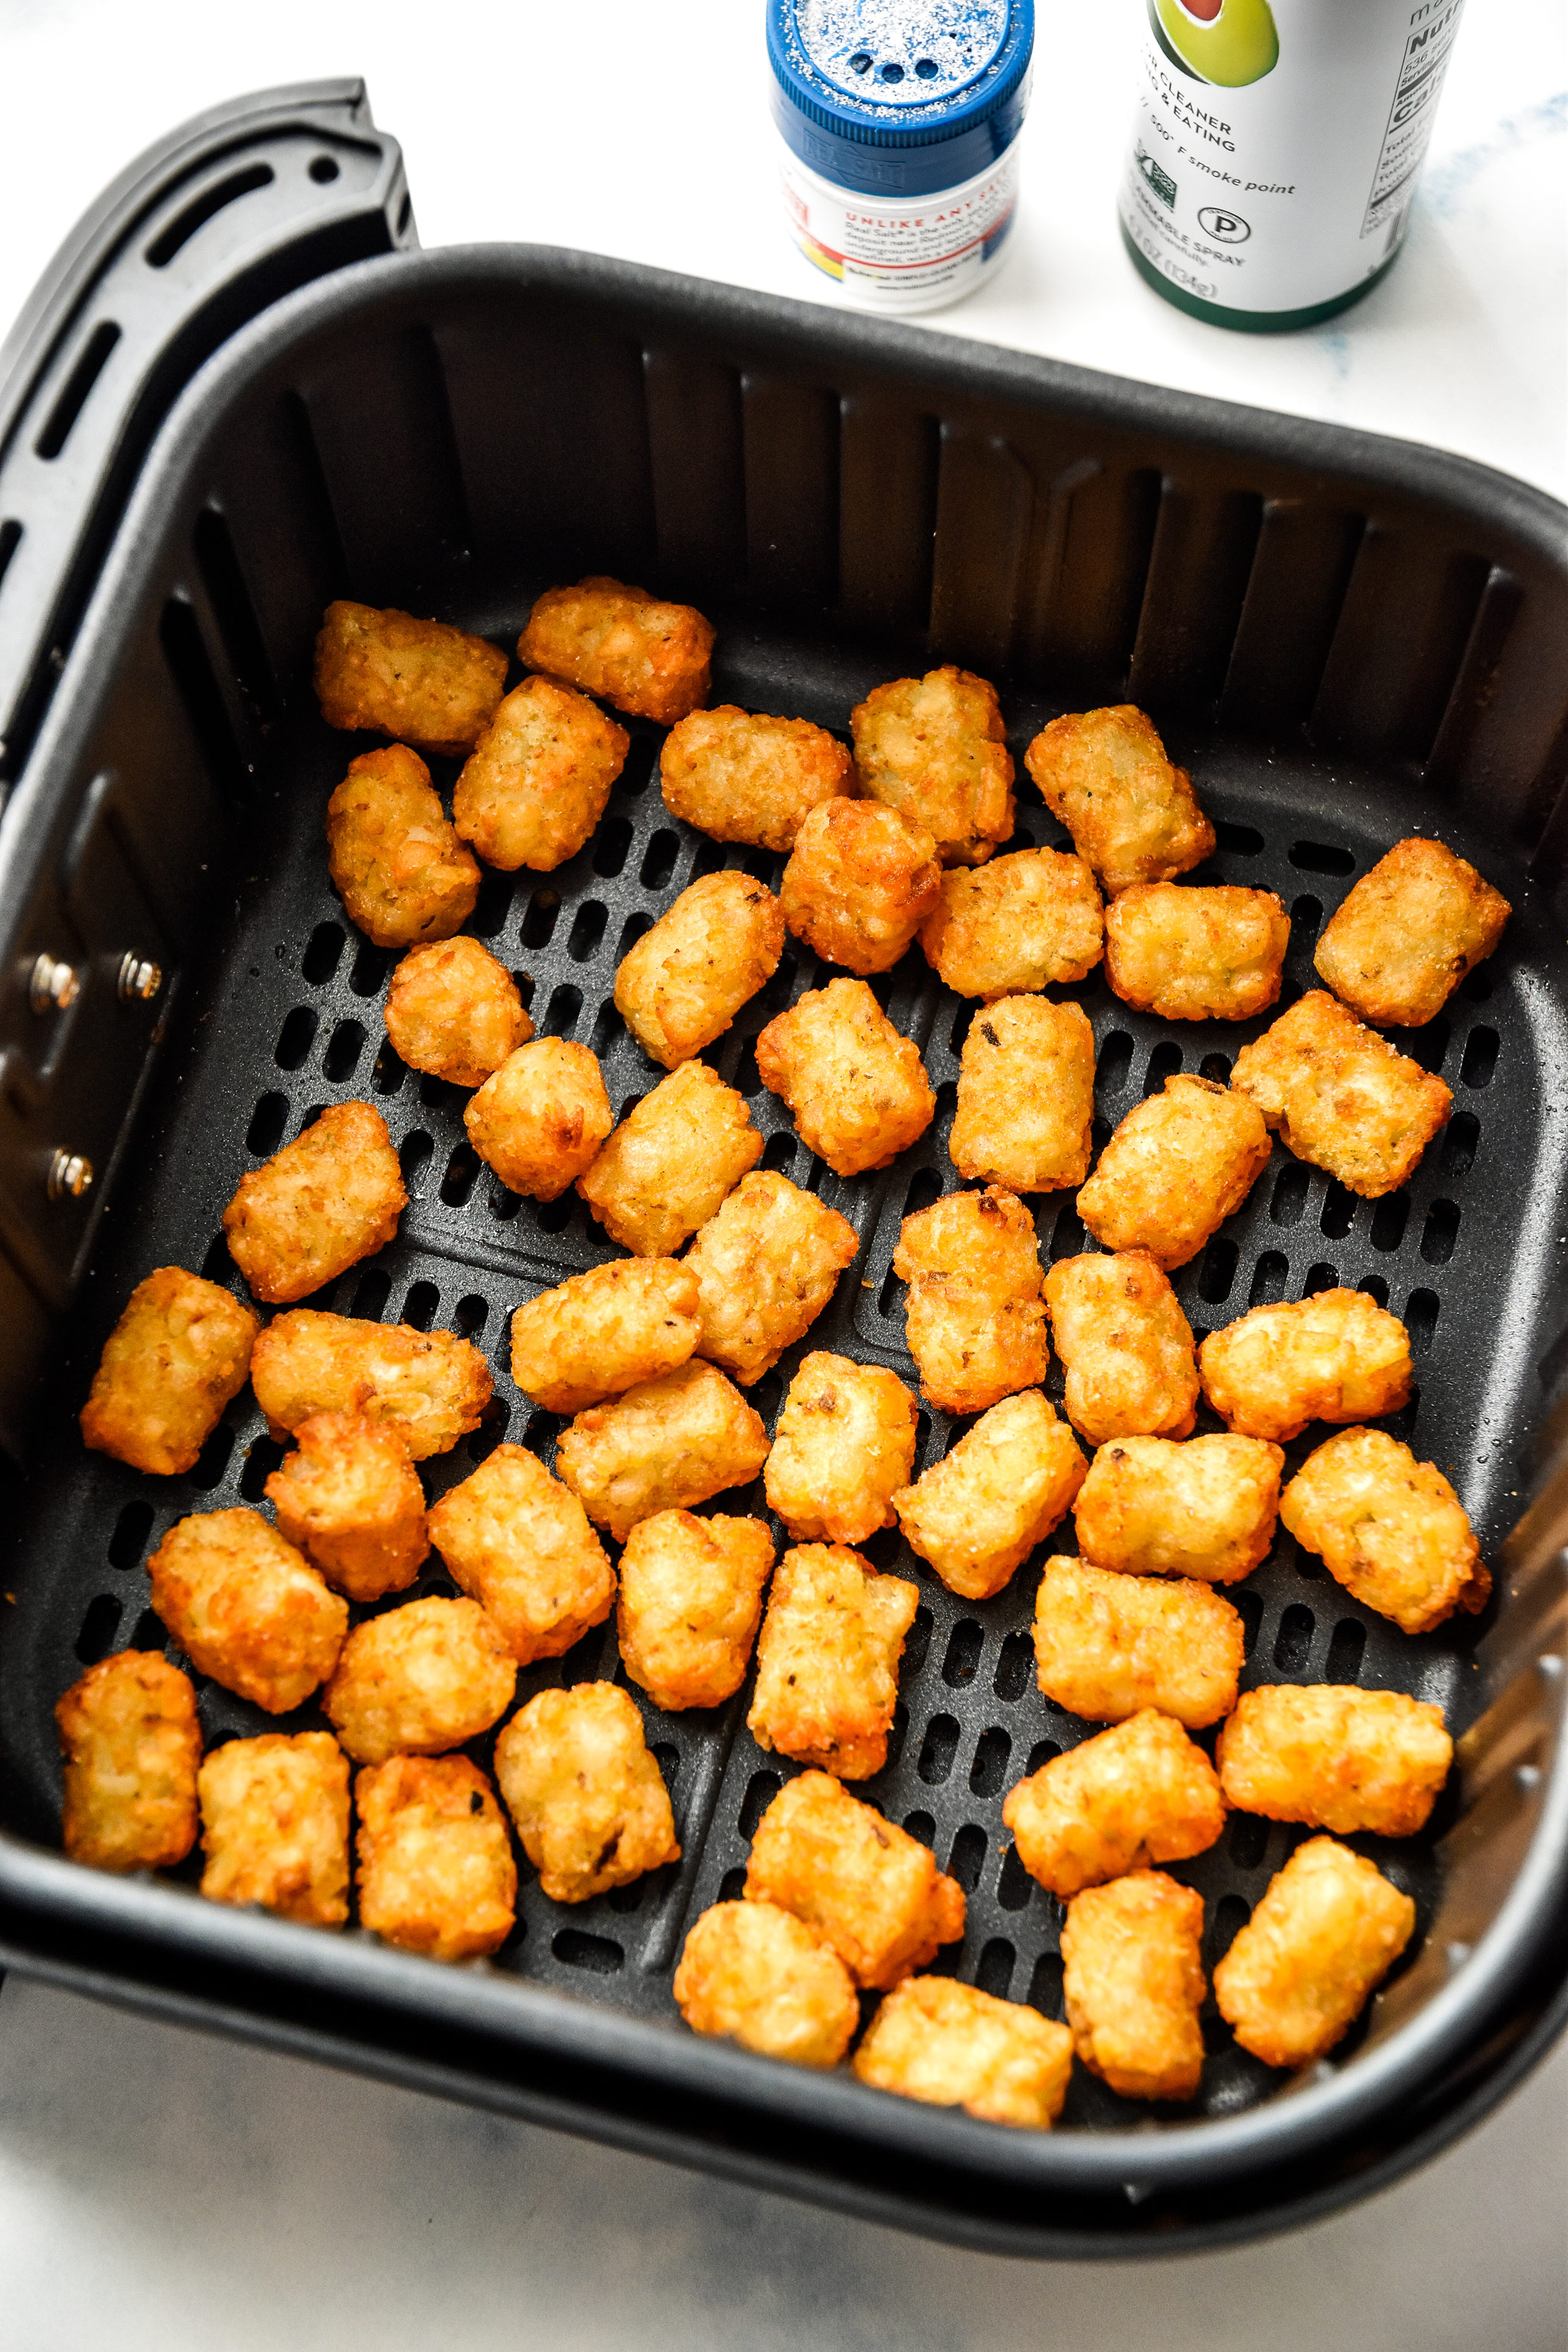 frozen tater tots cooking in an air fryer